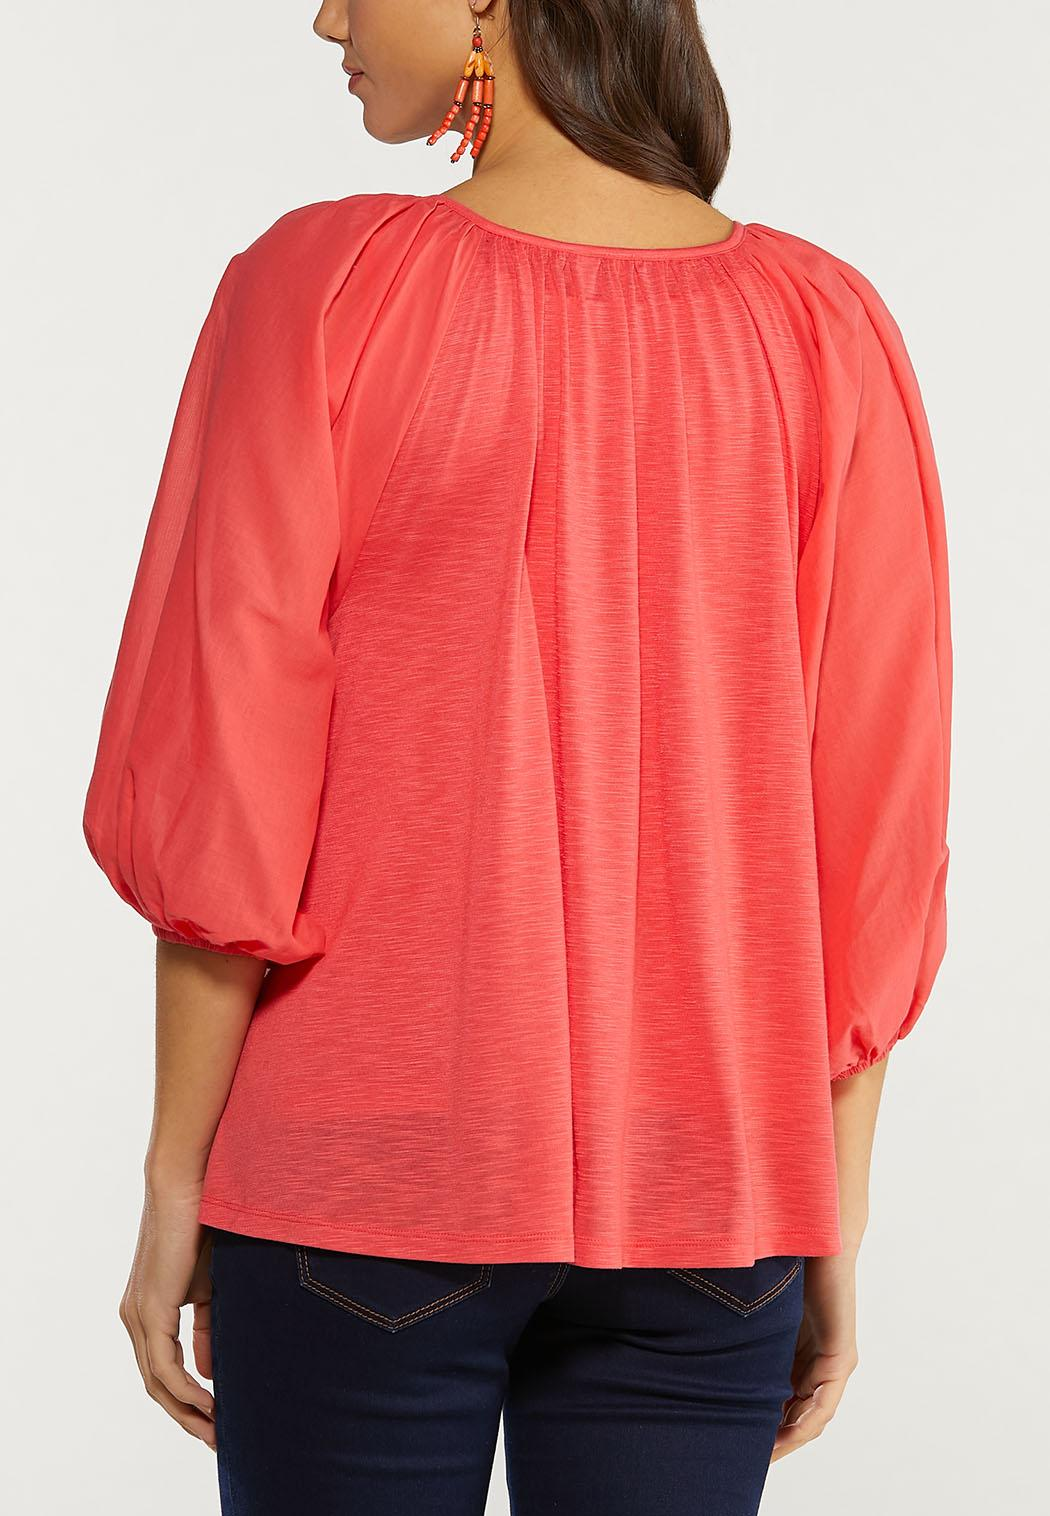 Spice Coral Balloon Sleeve Top (Item #44493462)